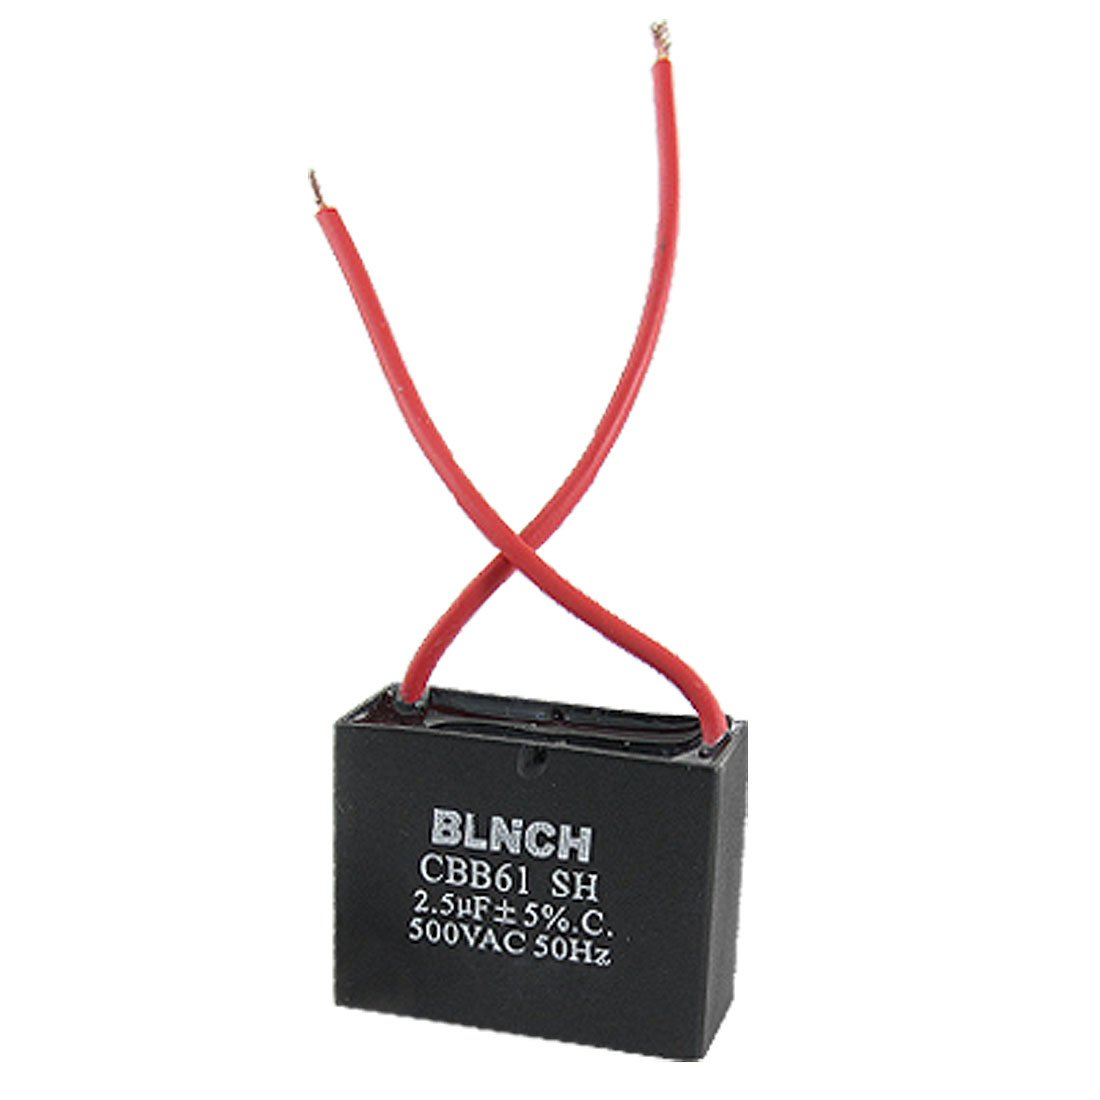 Com Aexit Ceiling Fan Capacitor Cbb61 2 5uf 500vac Wire 50hz Electronics